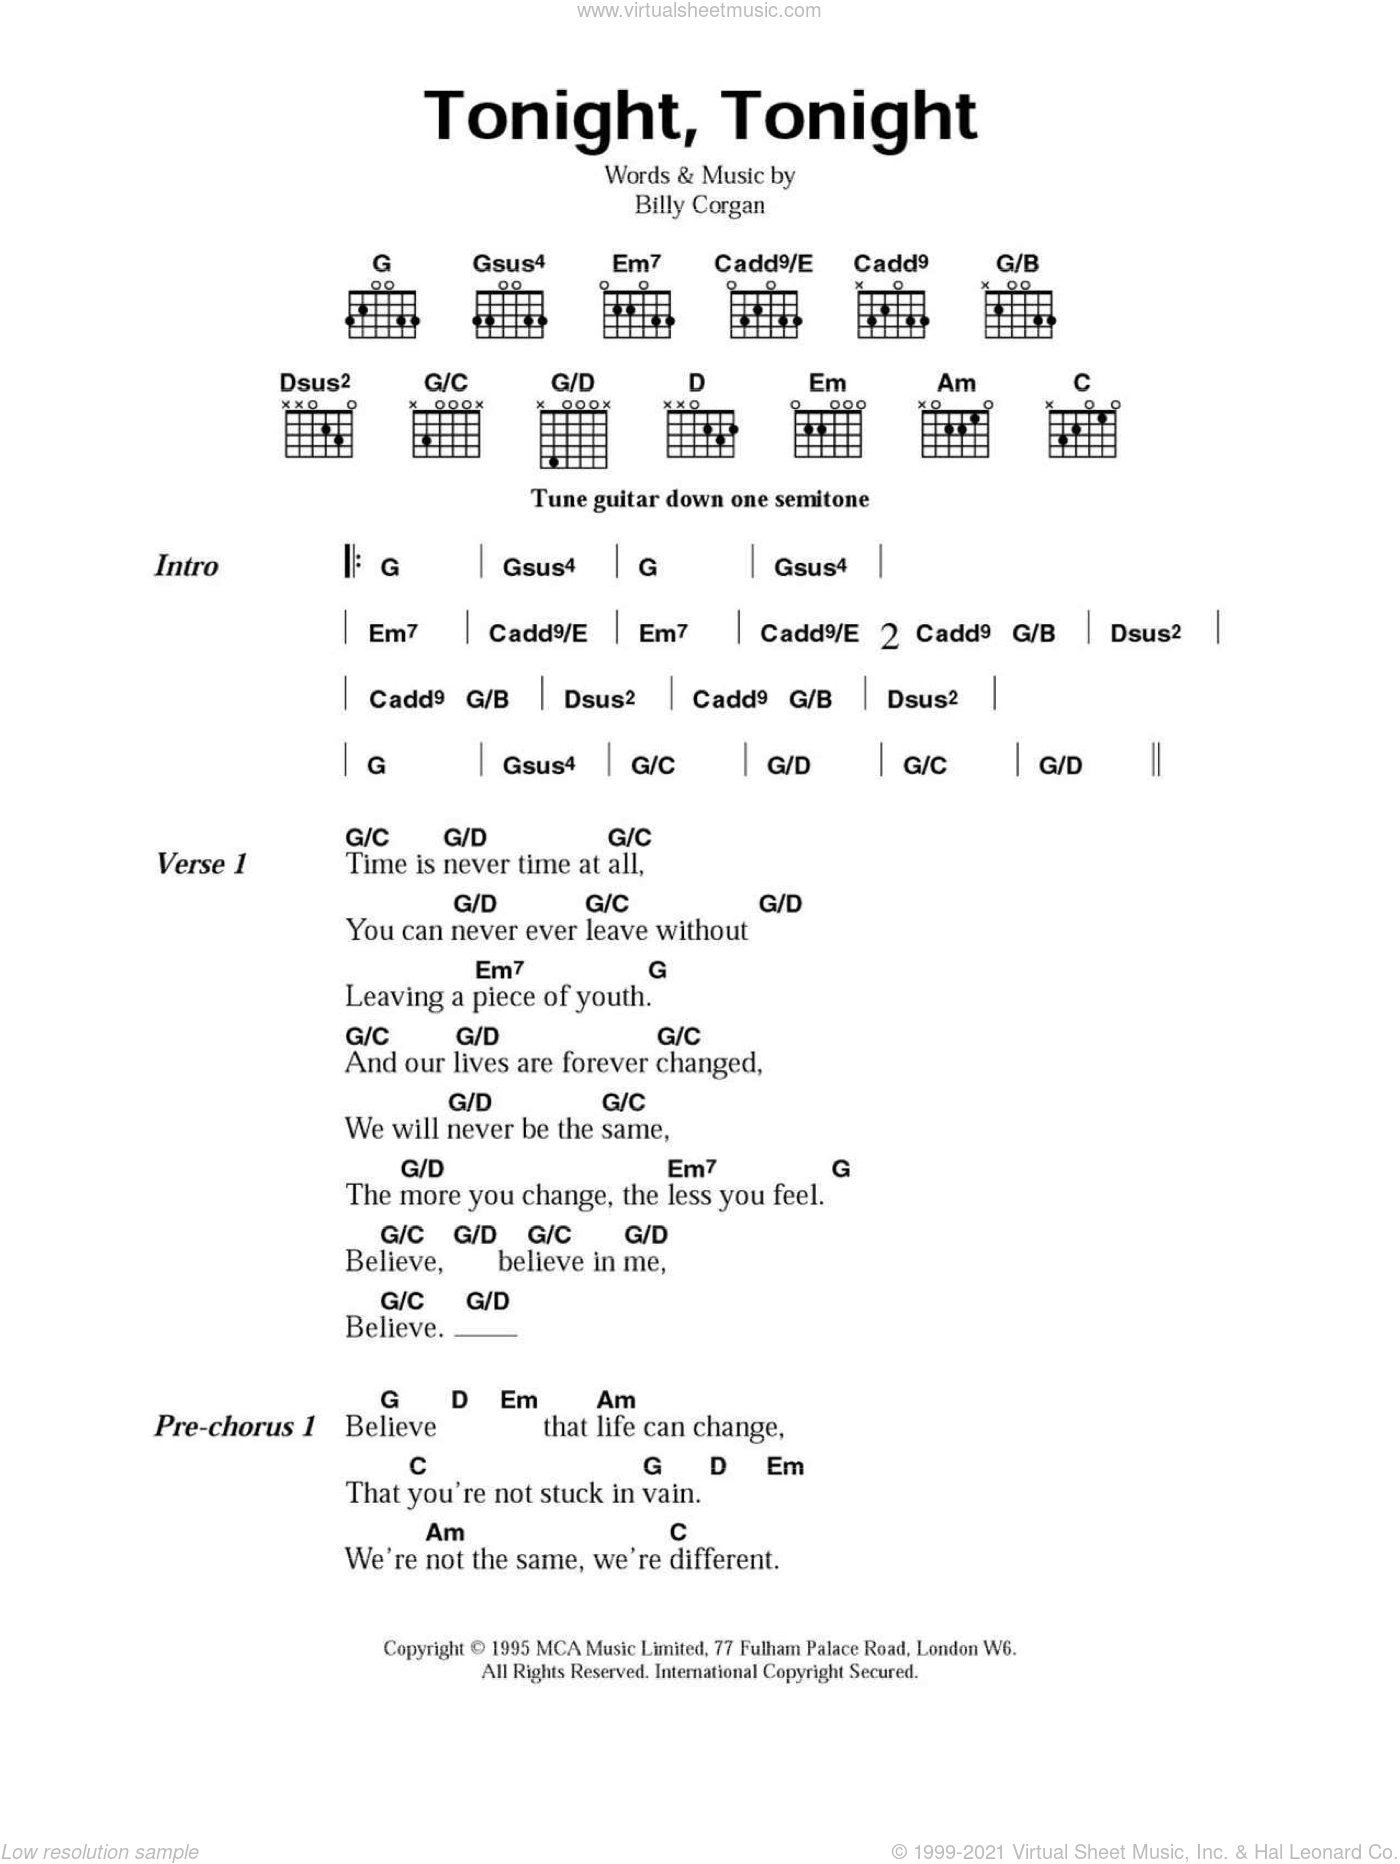 Pumpkins - Tonight, Tonight sheet music for guitar (chords) [PDF]